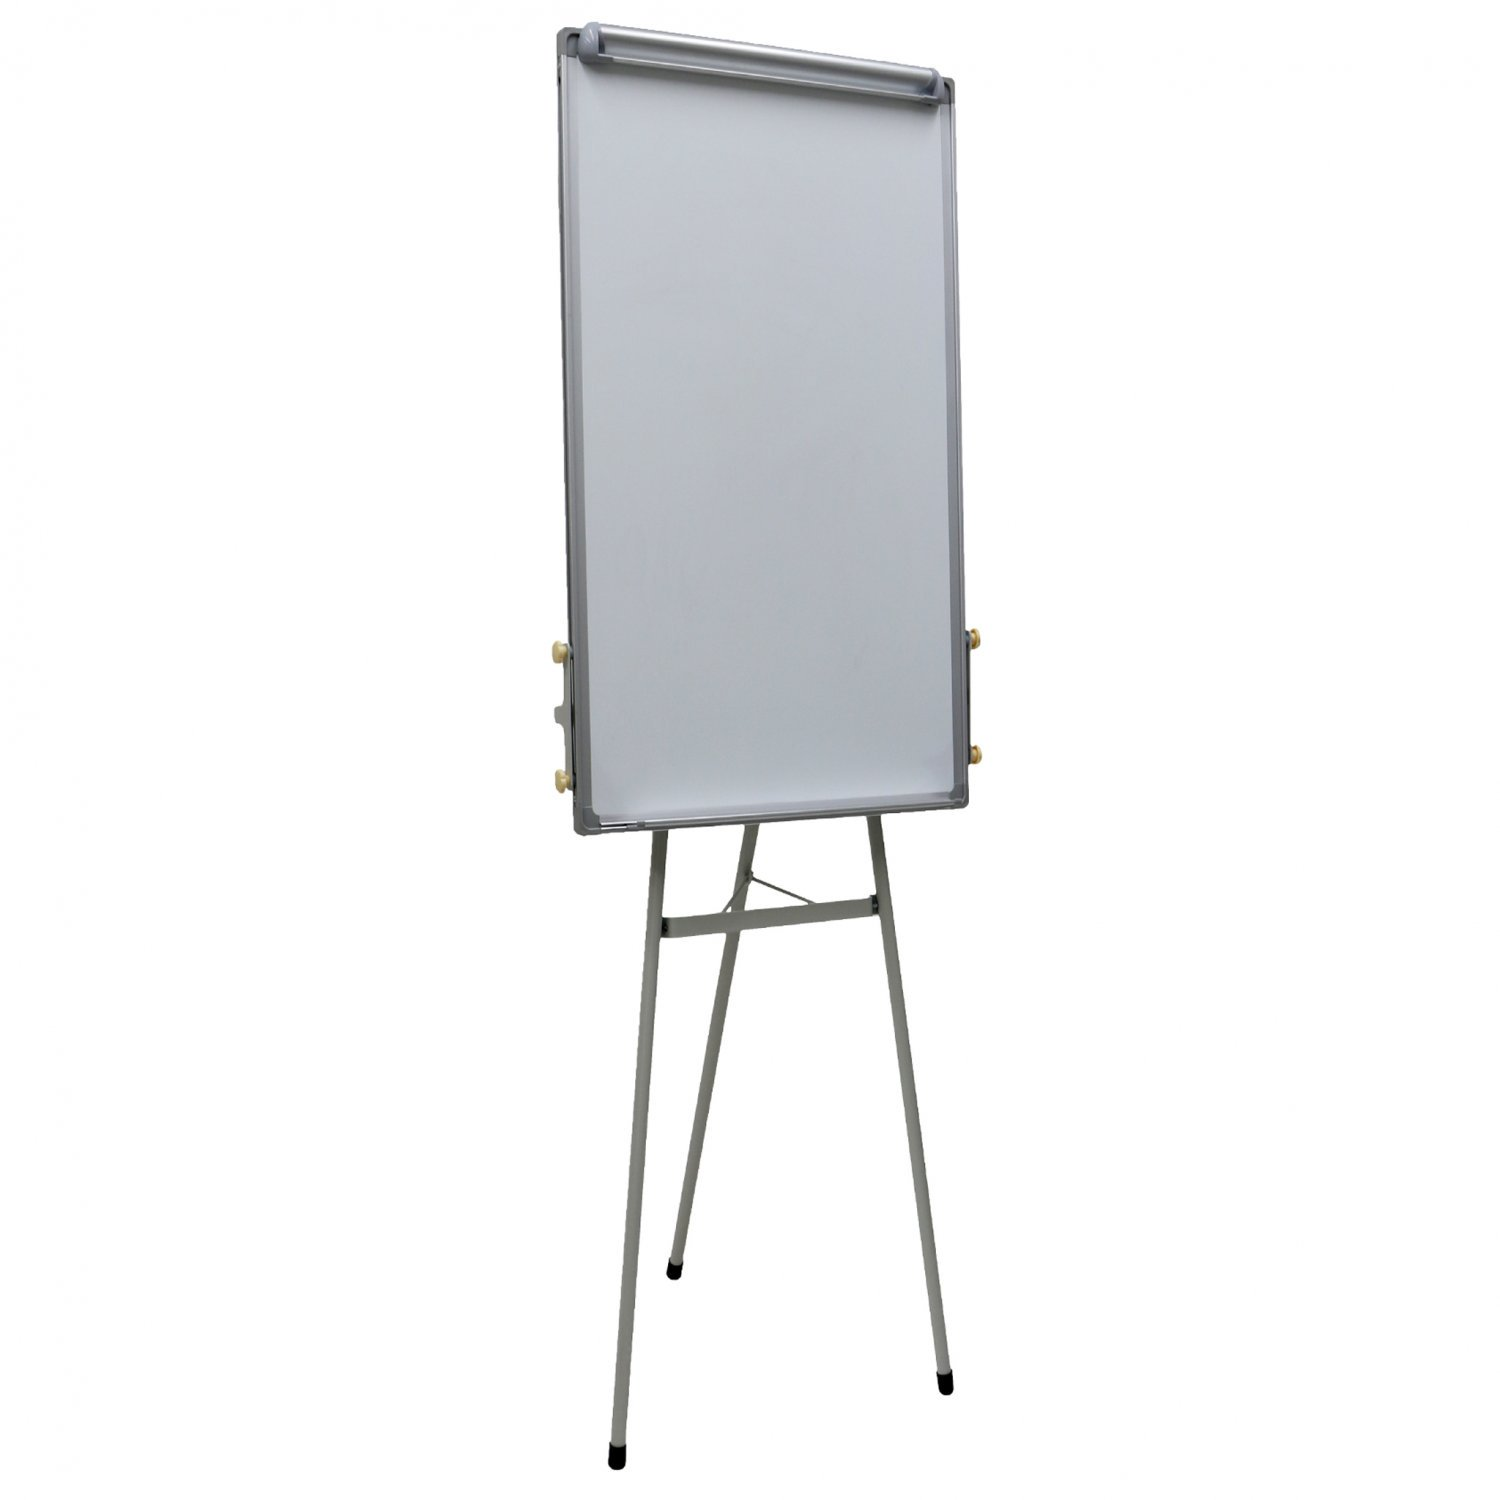 A1 Flipchart Easel Magnetic Presentation Whiteboard with Eraser